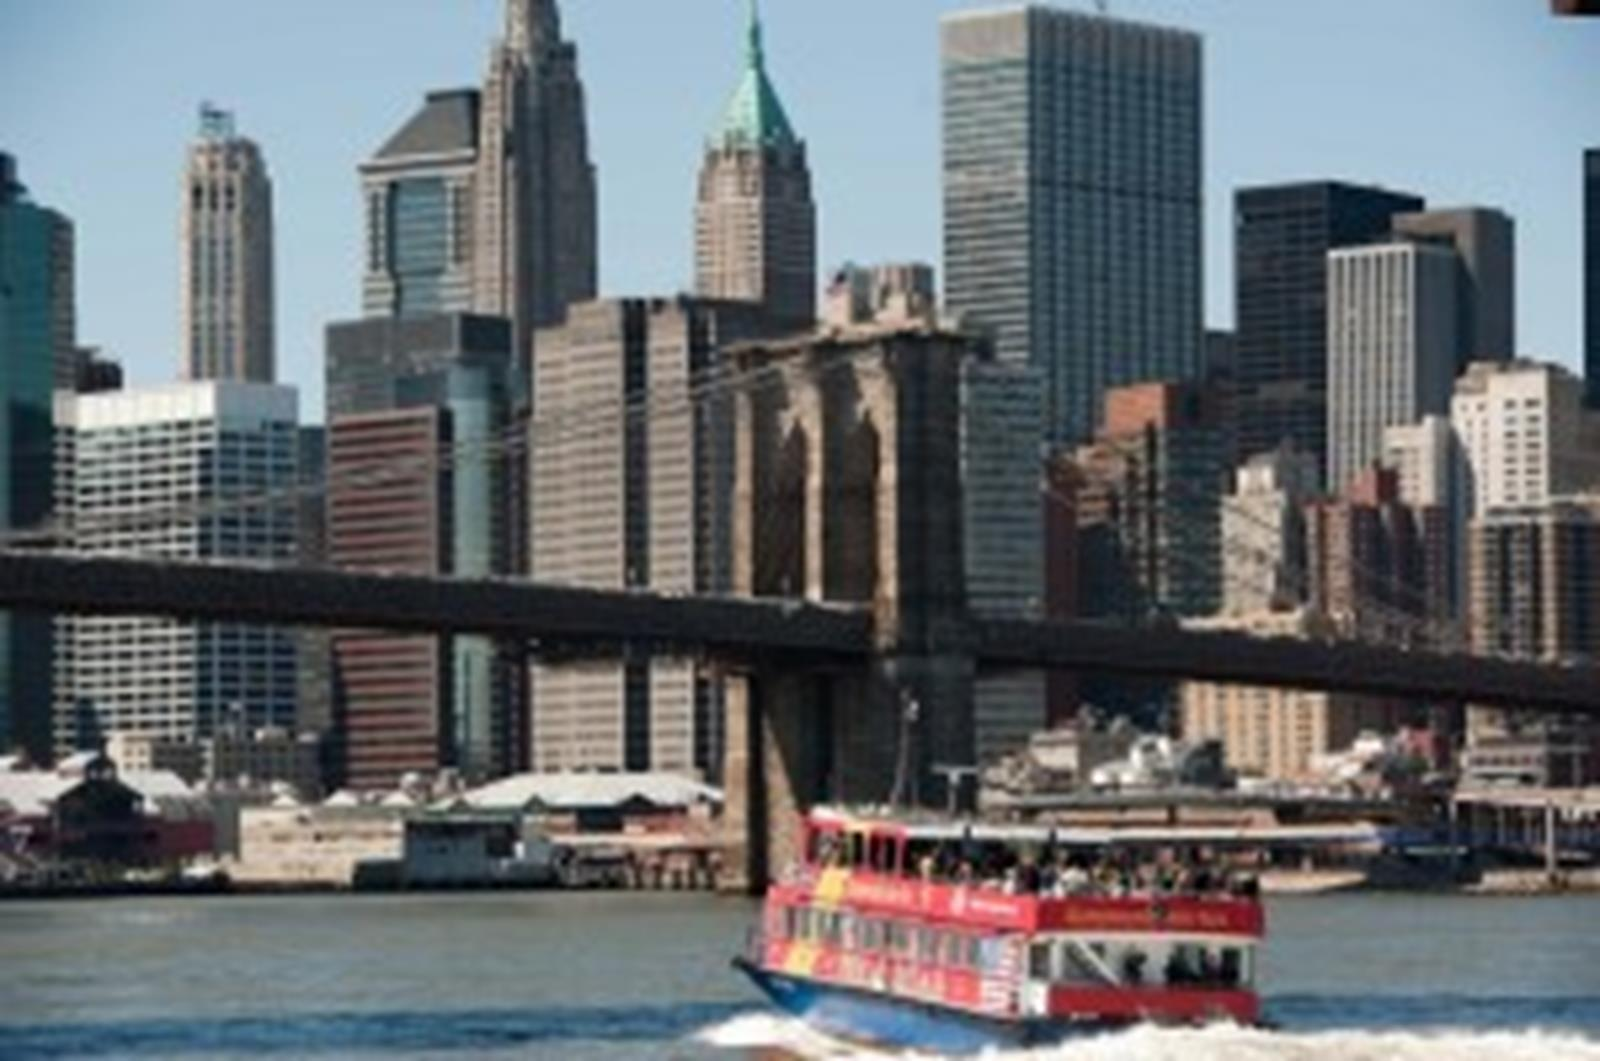 CitySightseeing New York® cruises sail under the Brooklyn, Manhattan and Williamsburg bridges.